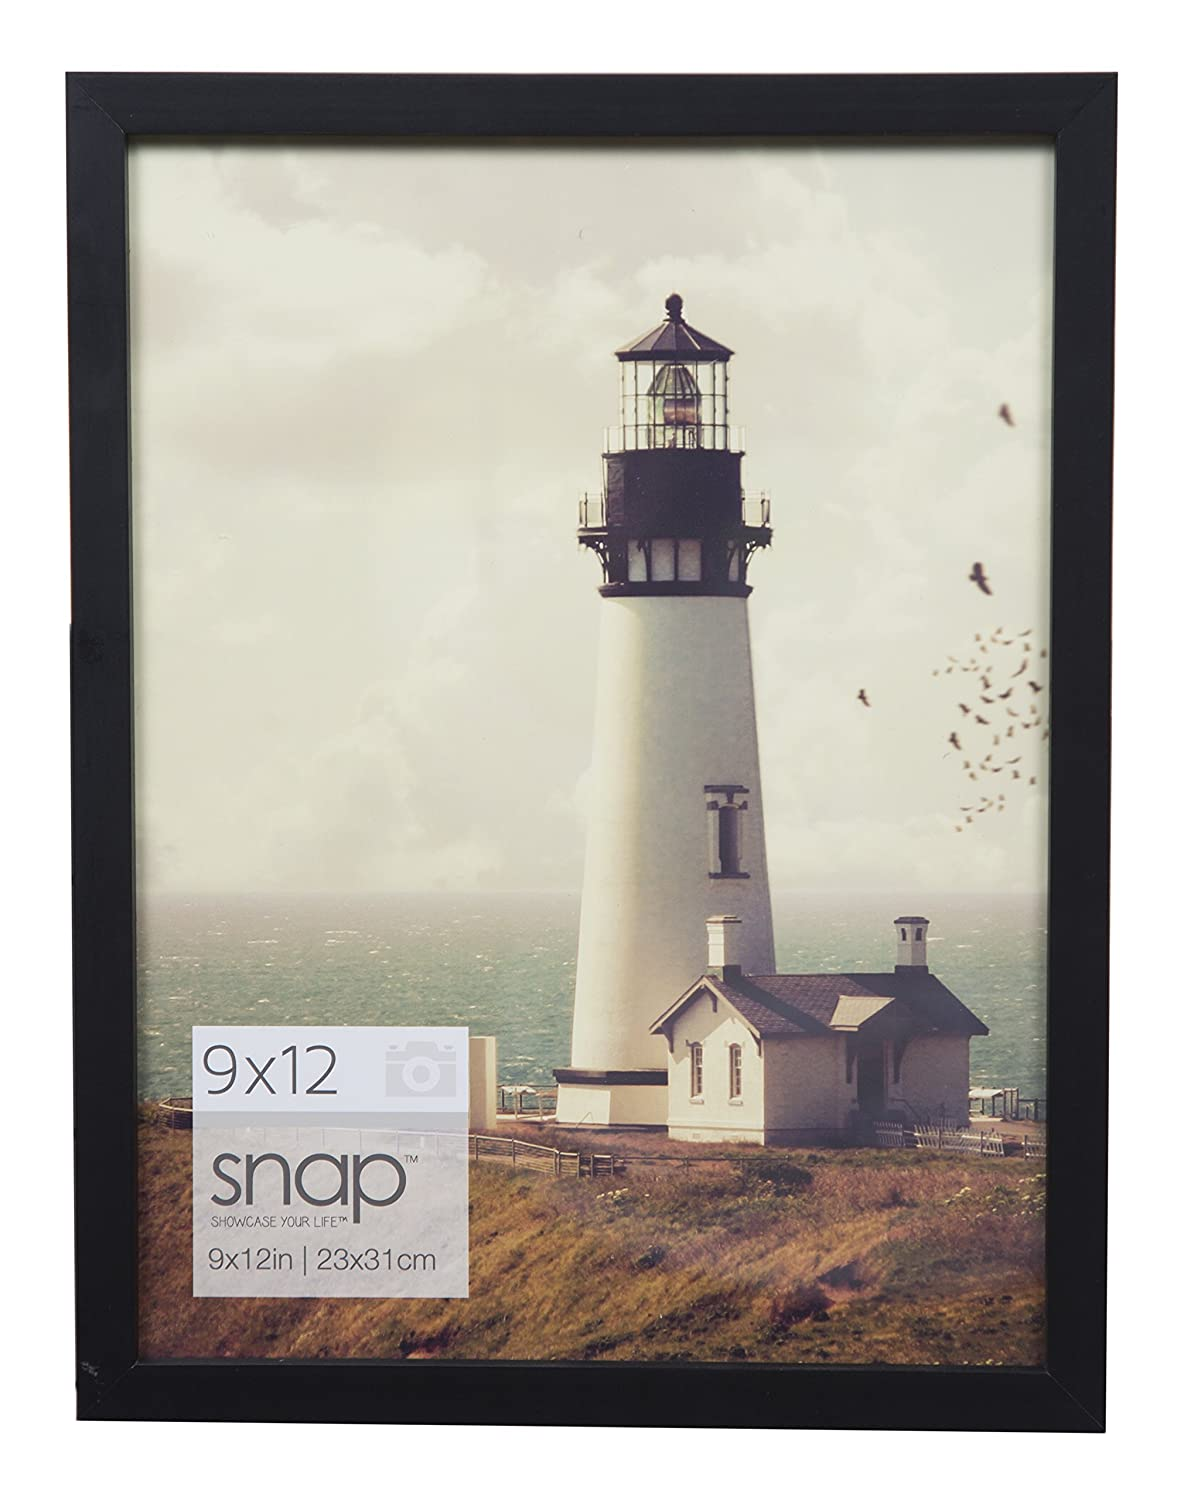 Snap 8.5x14 Black Wood Wall Photo Frame NBG Home 10FW1568